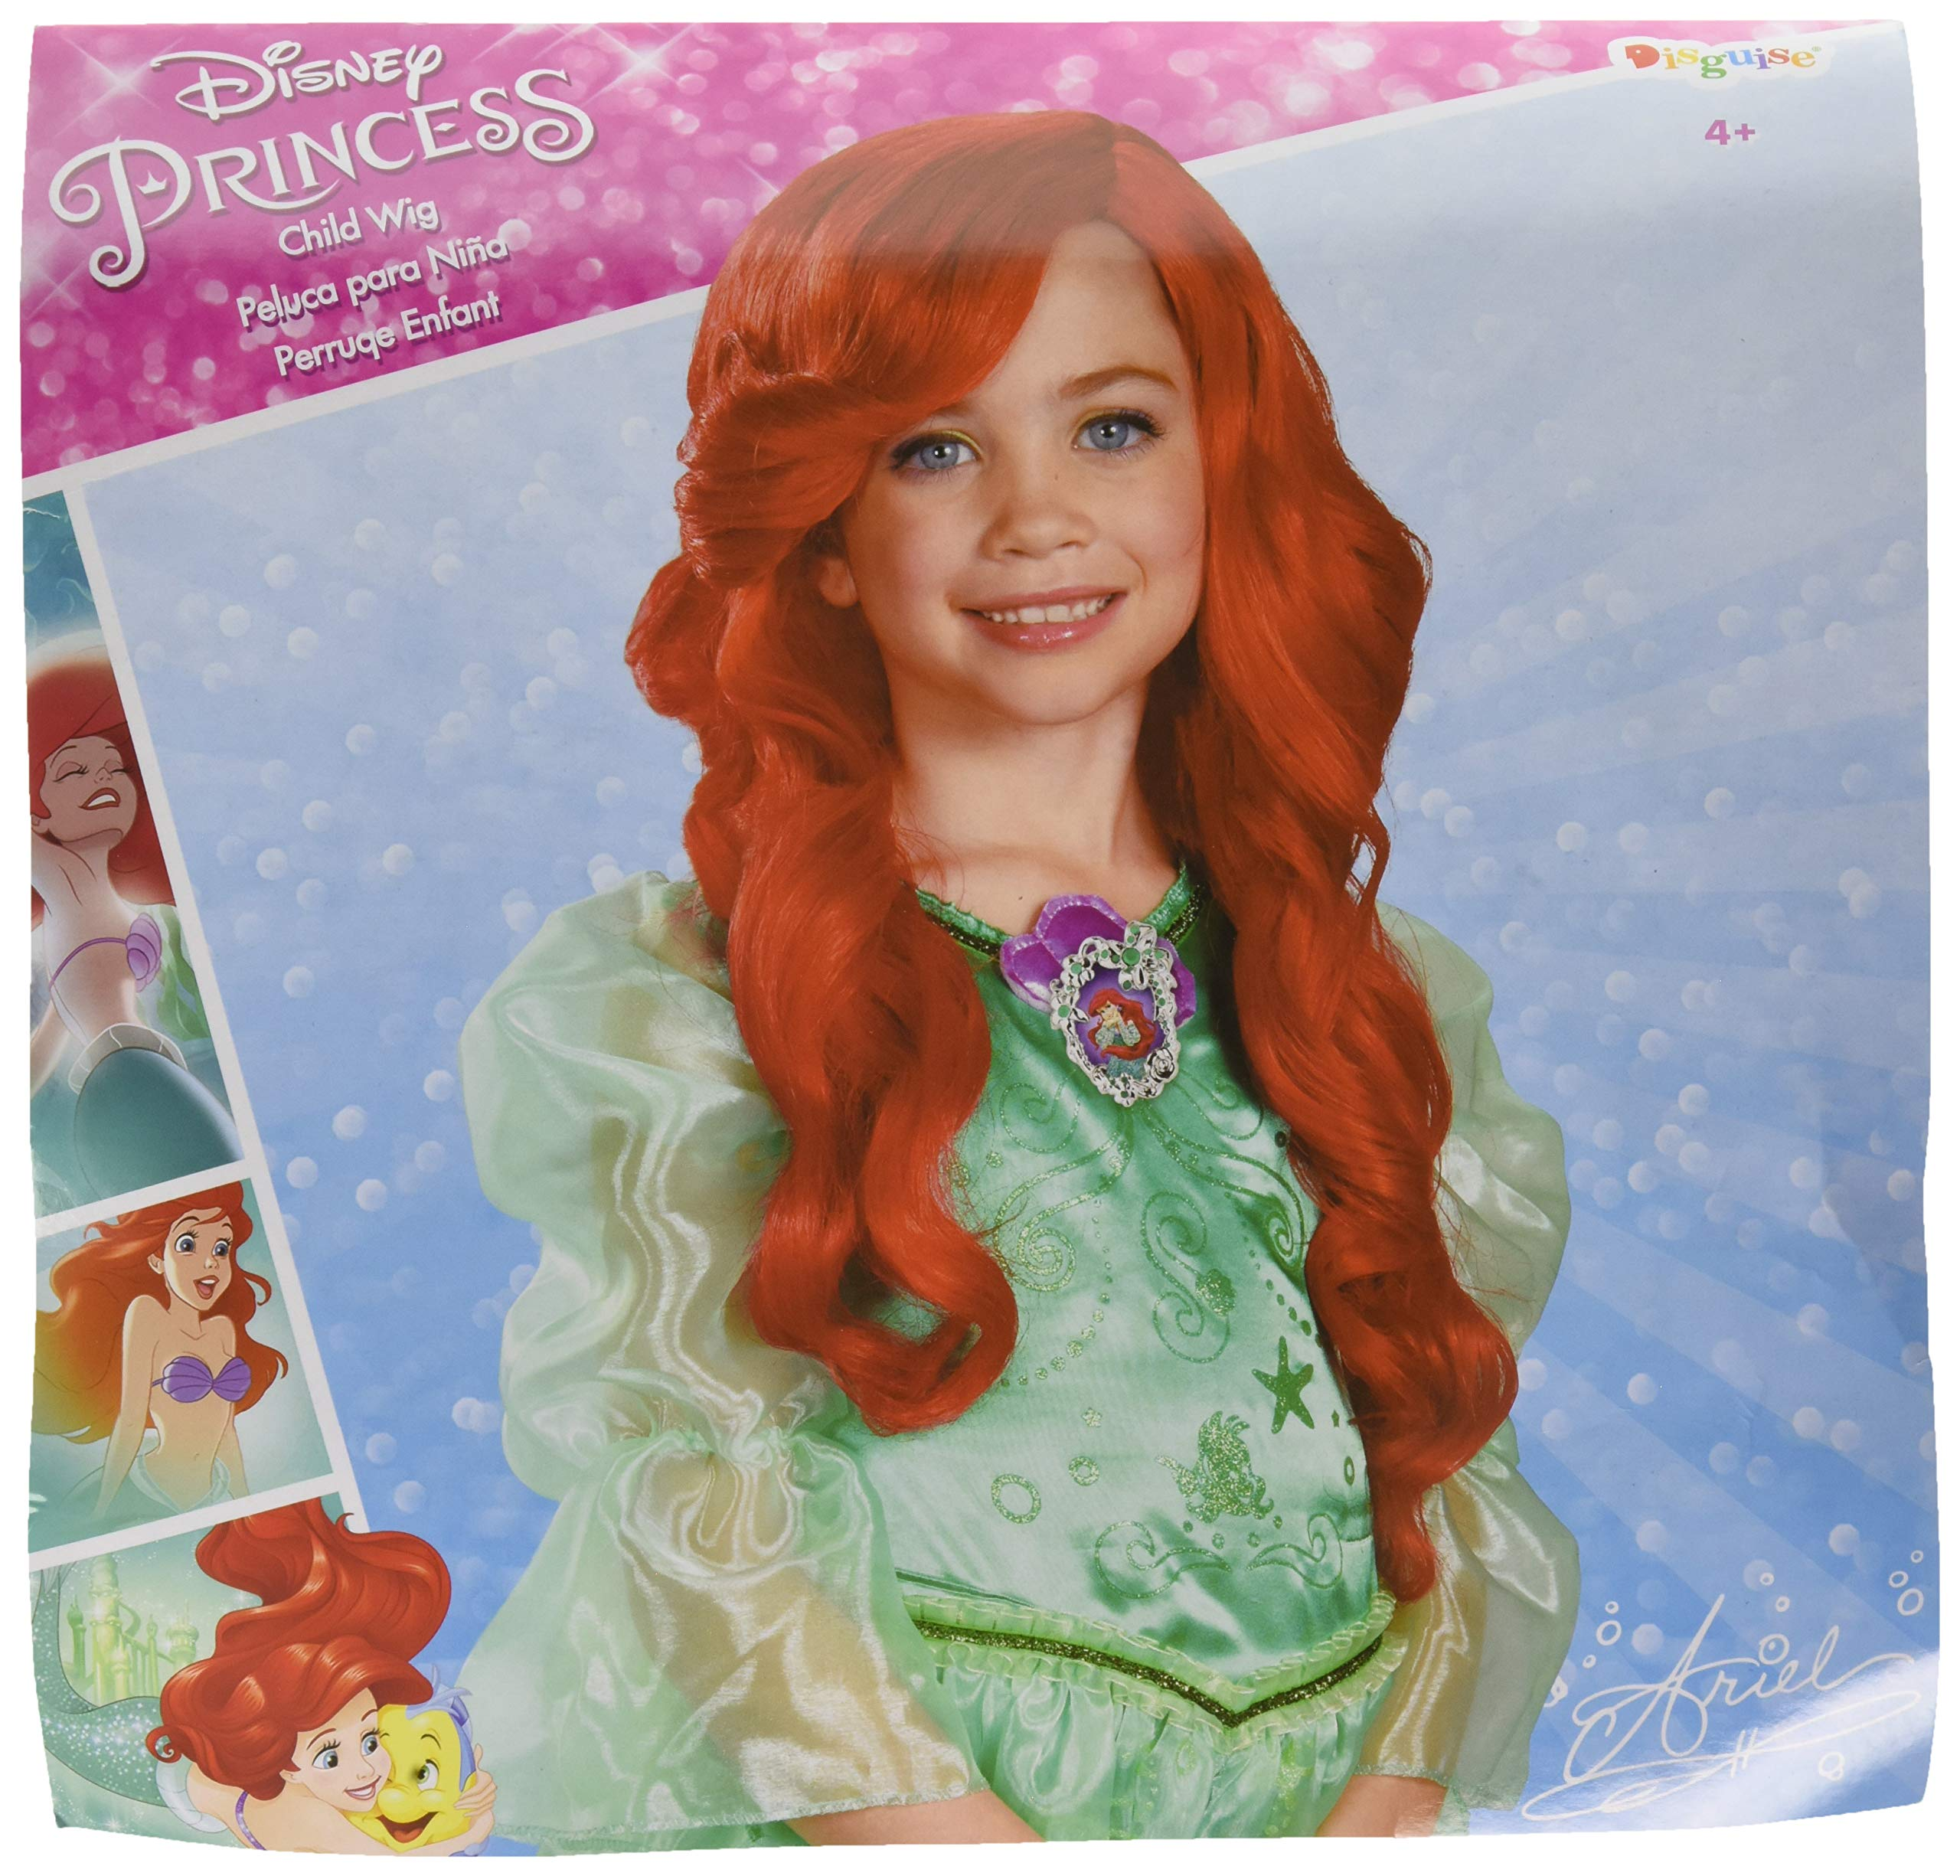 Disney Princess The Little Mermaid Ariel Child Wig